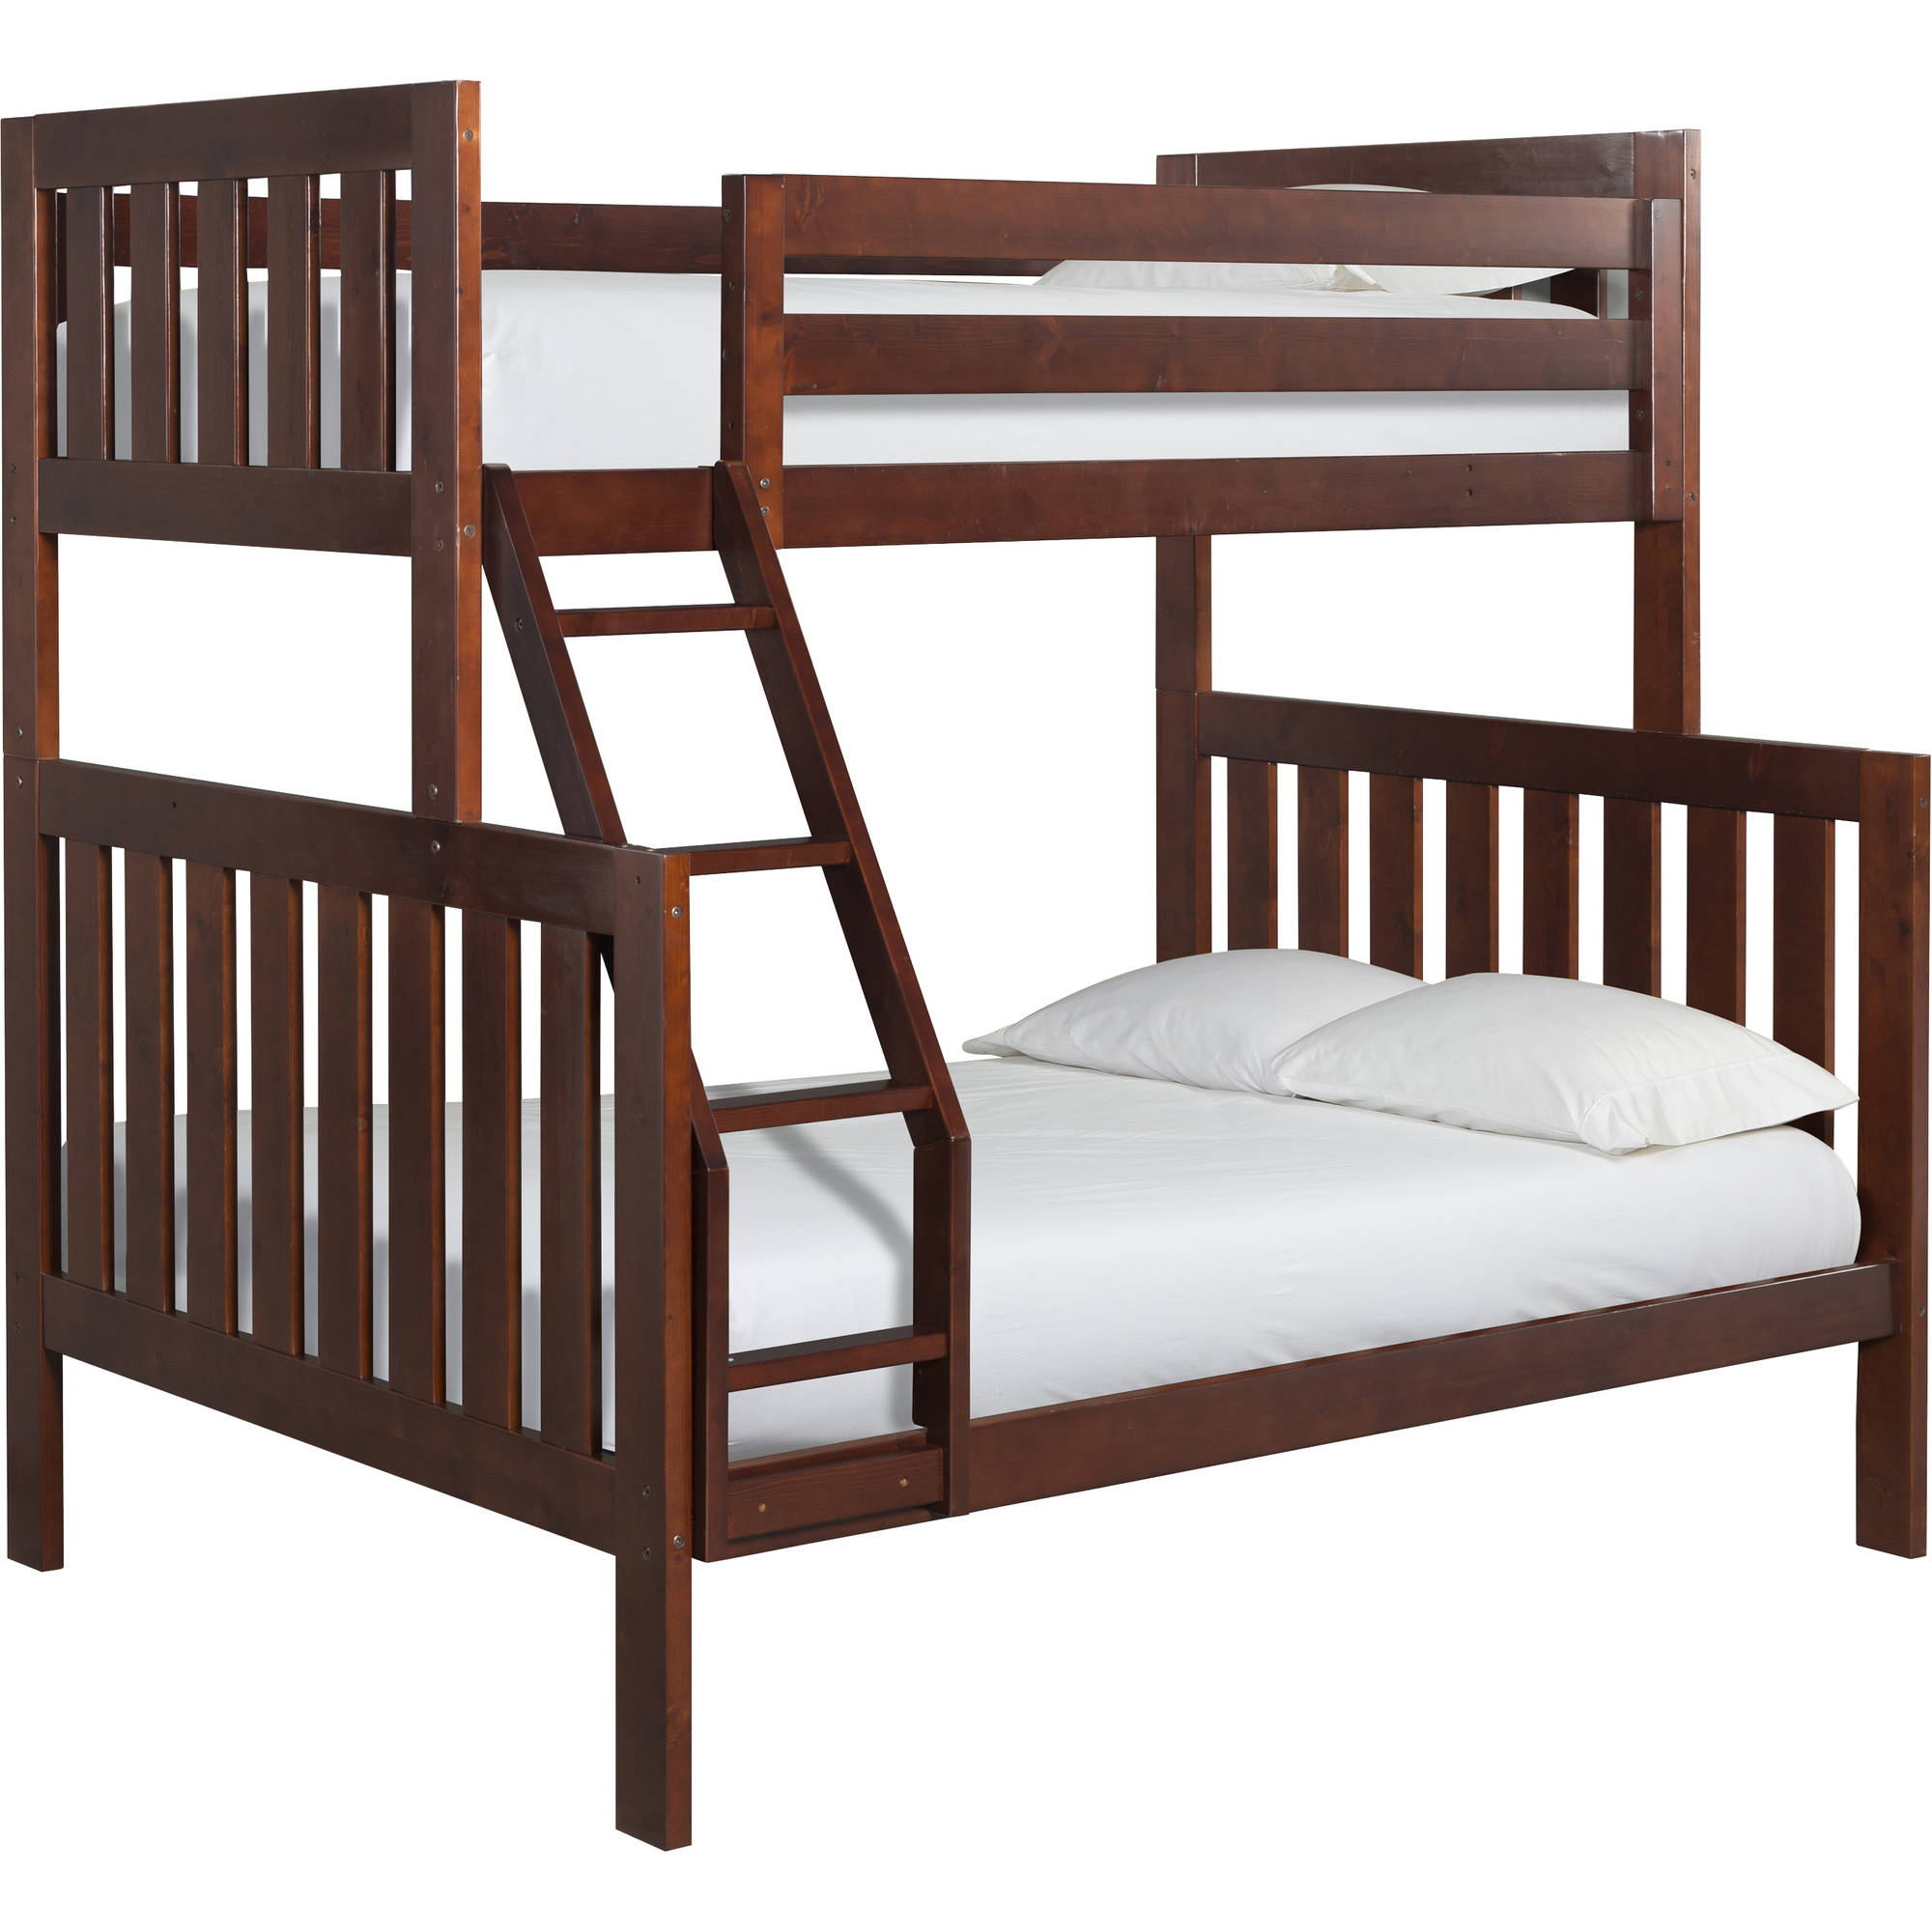 Canwood Lakecrest Twin Over Full Bunk Bed, Cherry